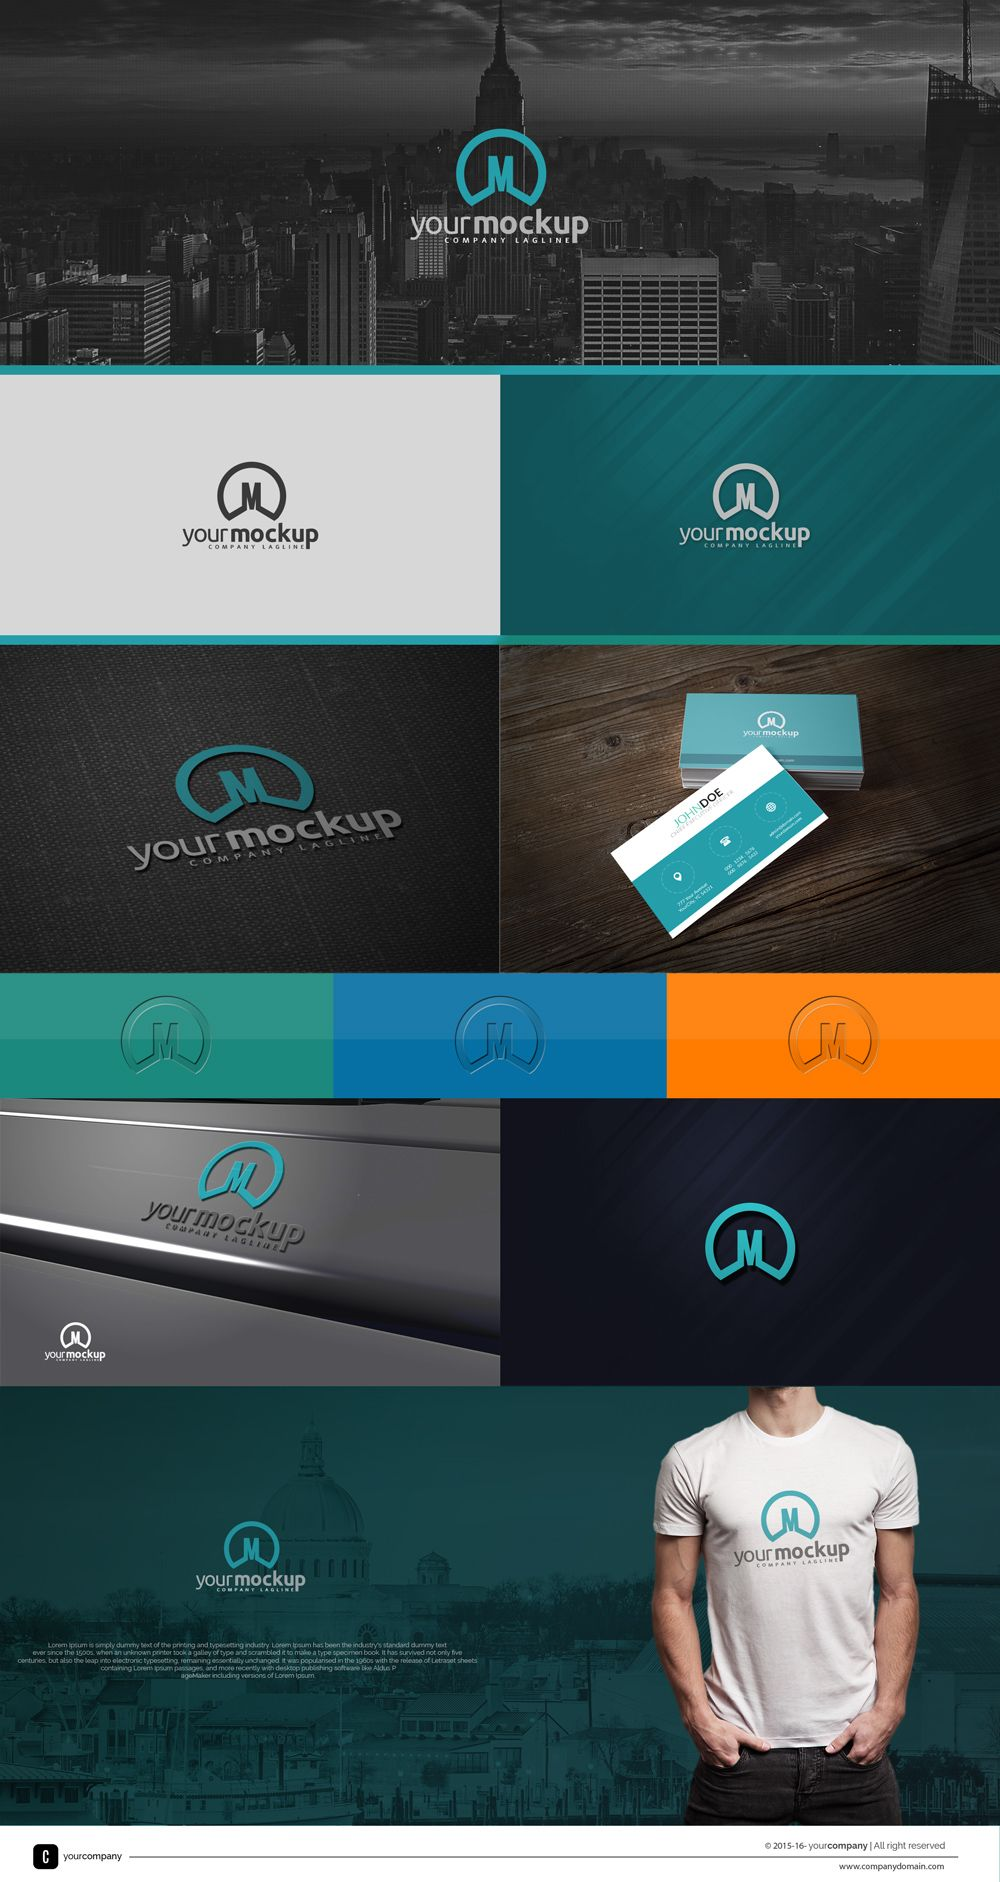 free logo presentation template for quick logo mock up creation, Powerpoint templates